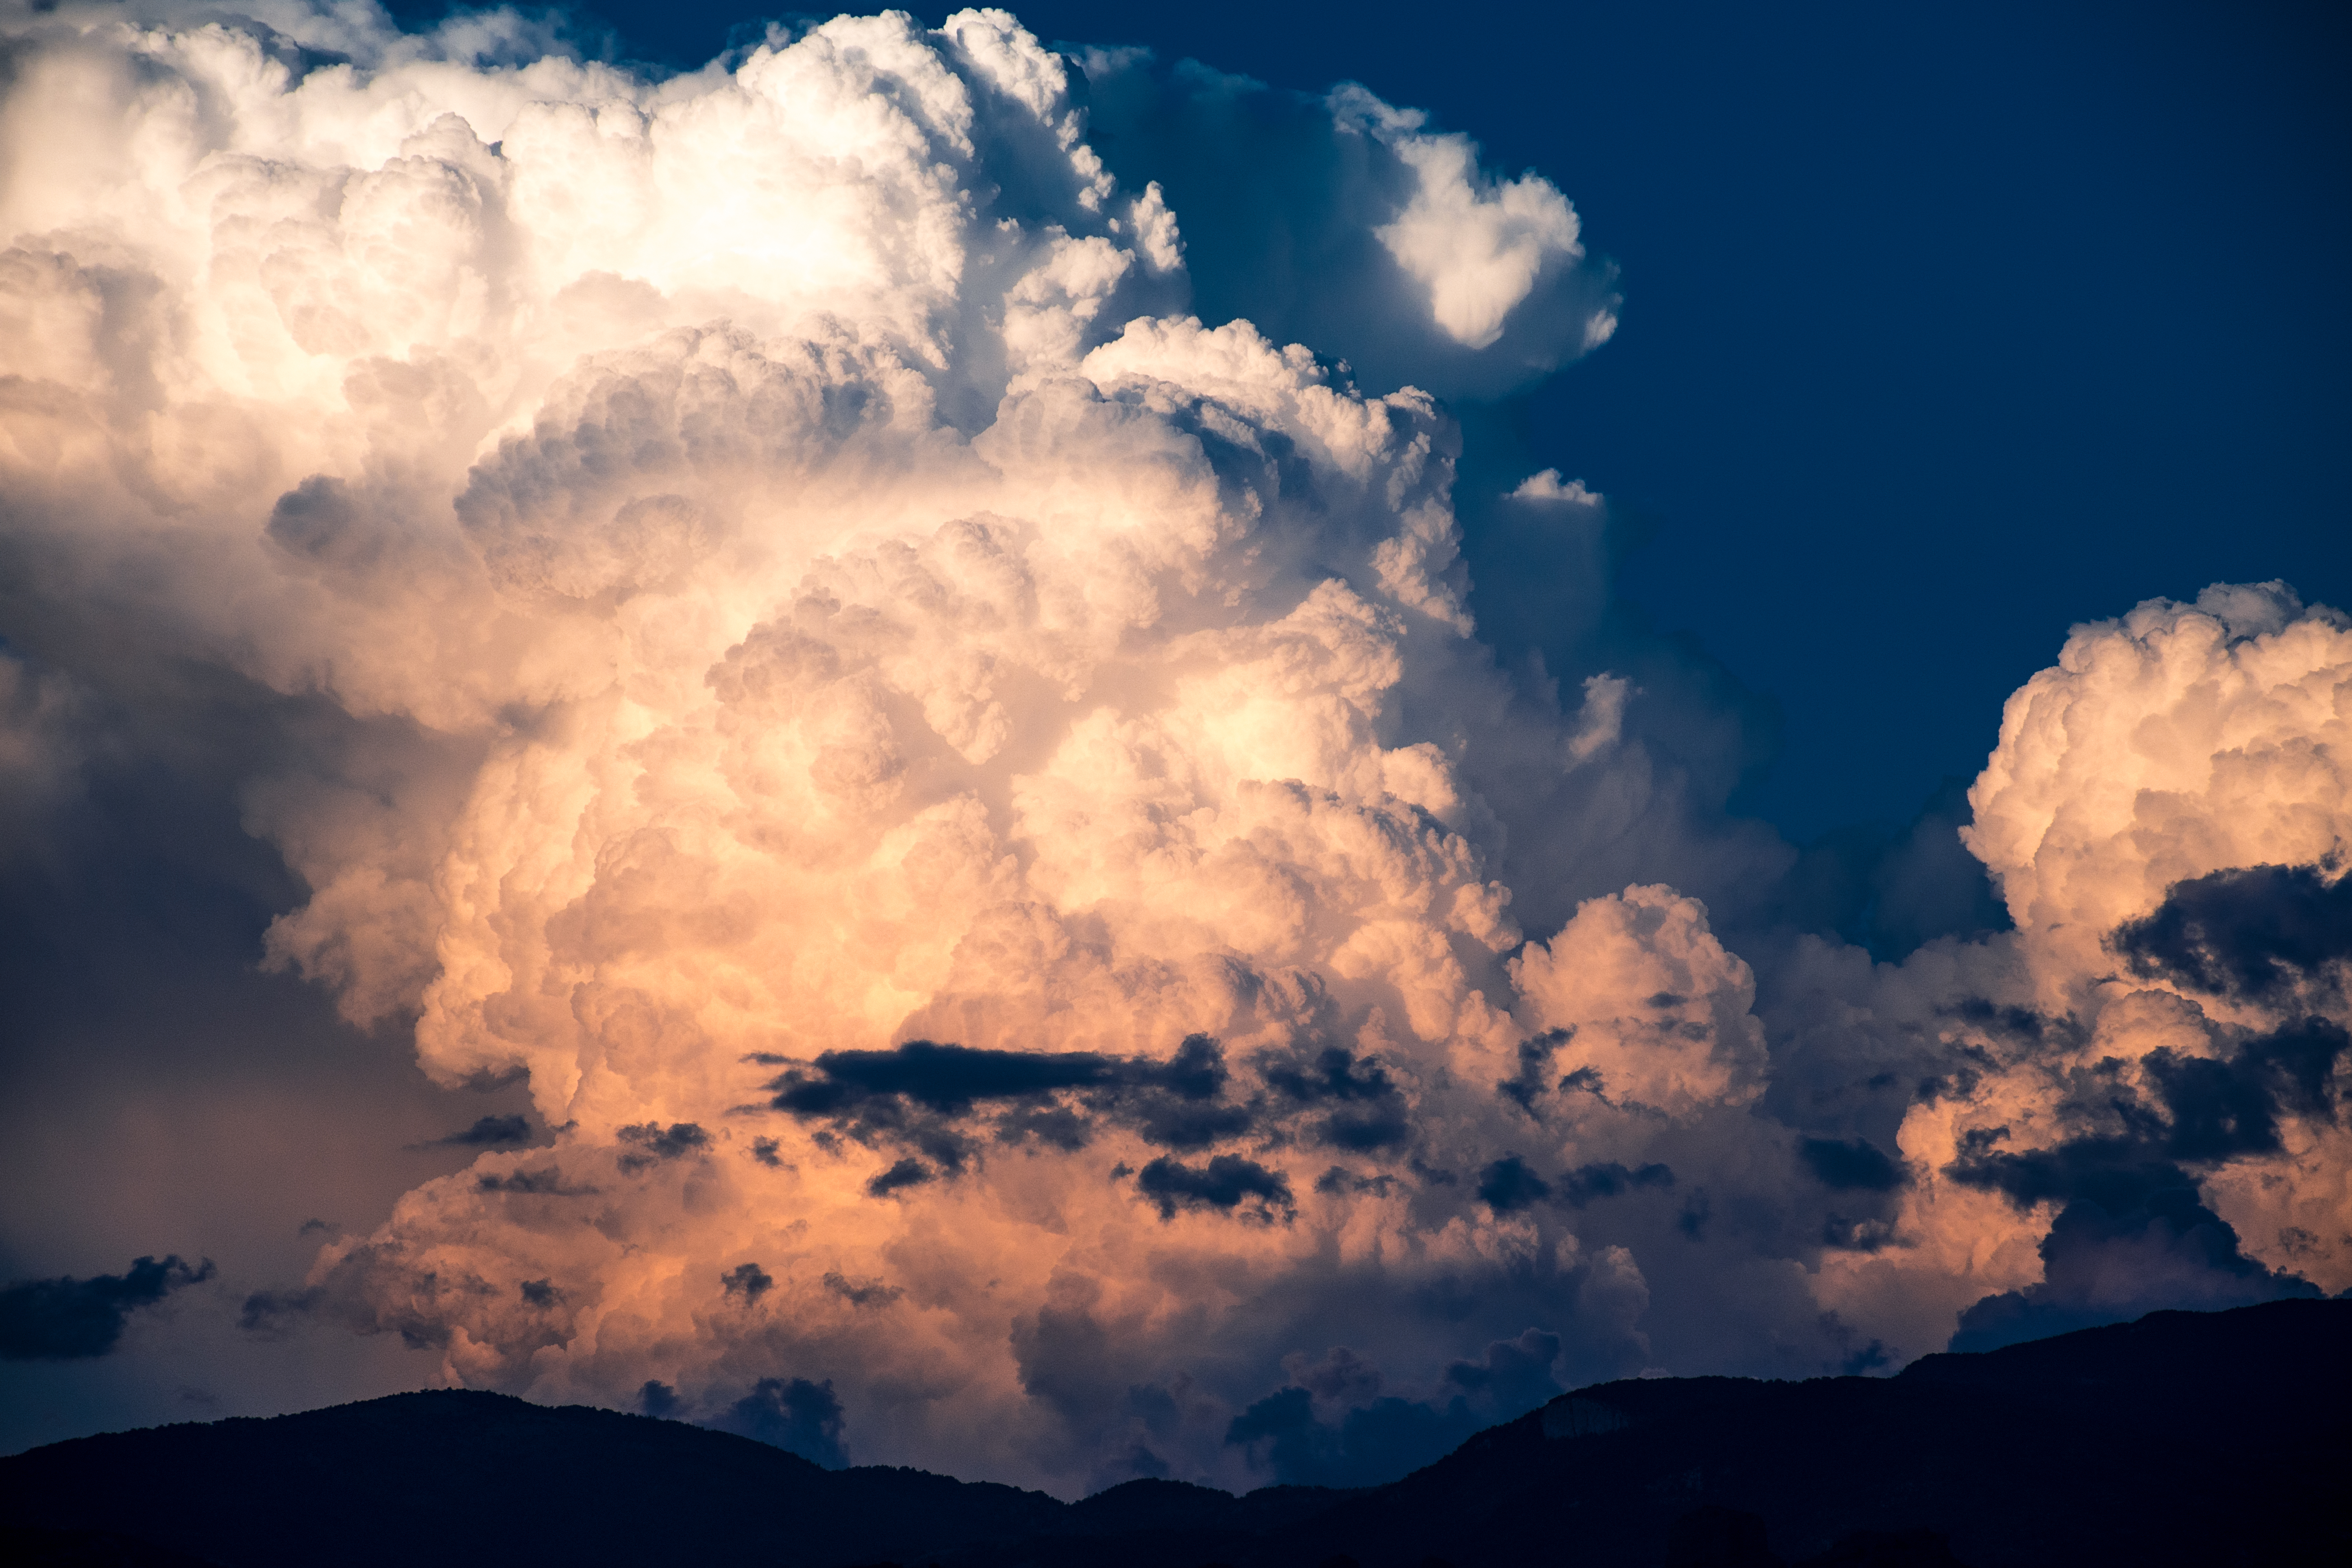 Storm clouds at dusk photo